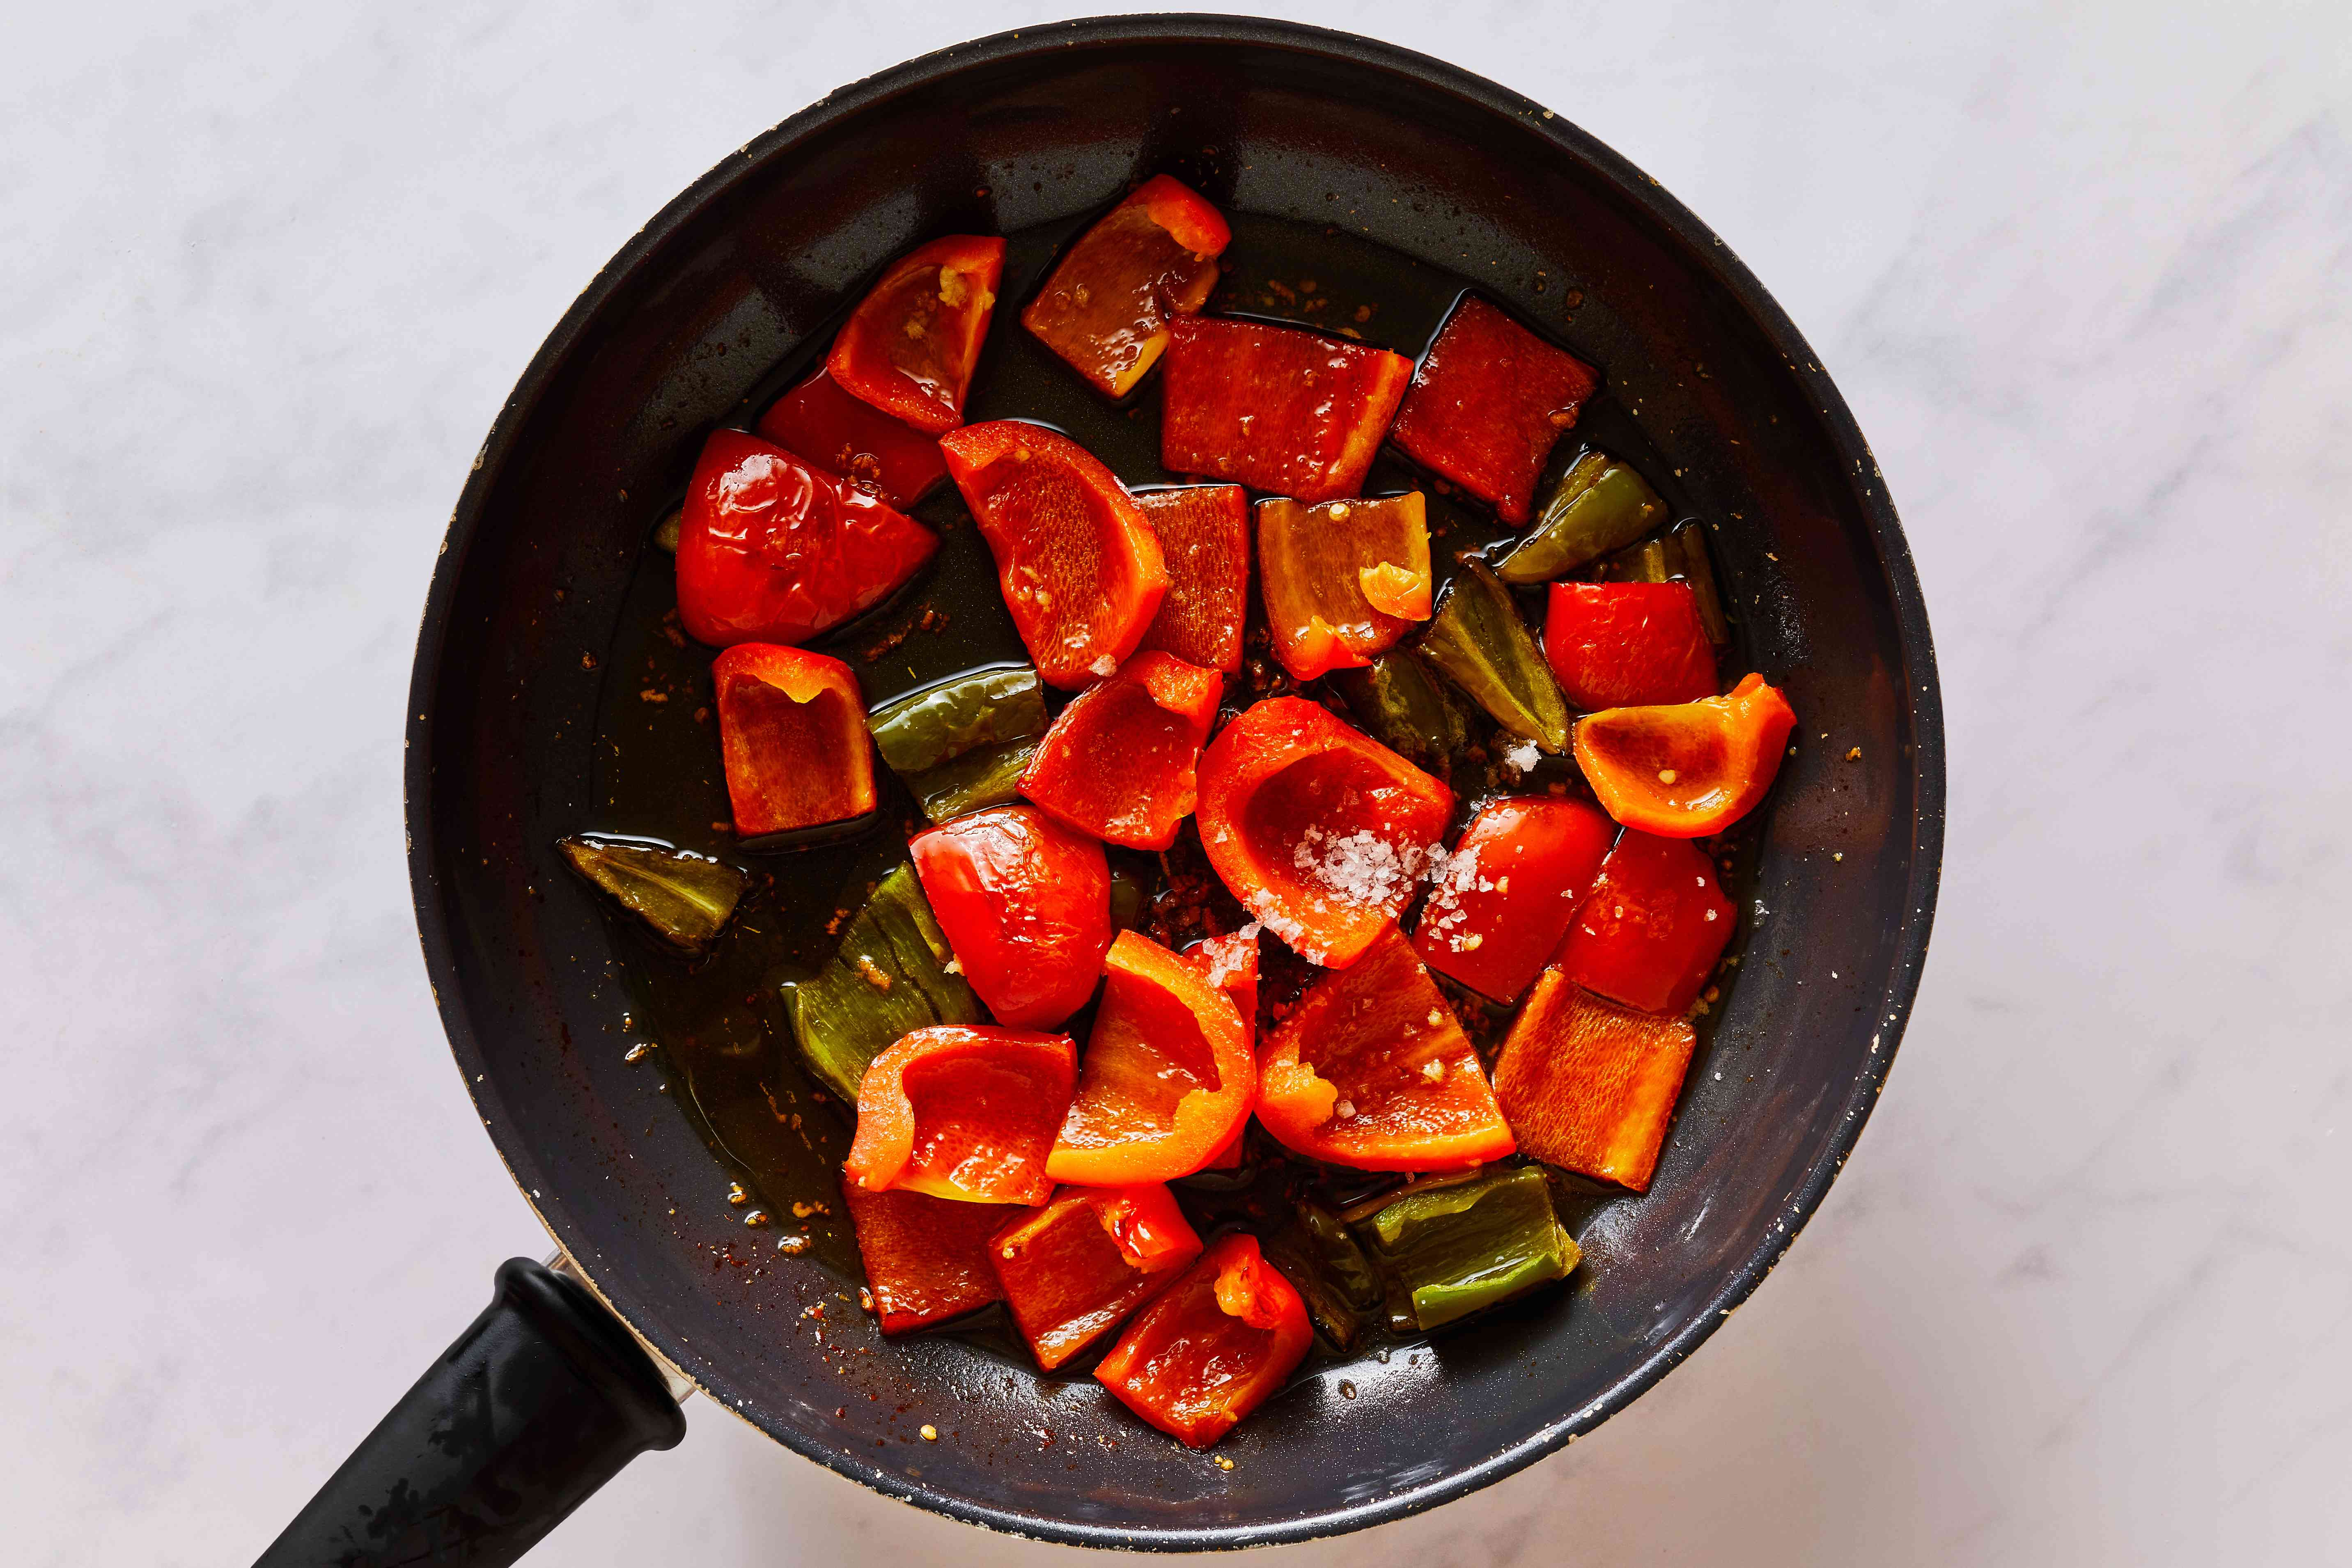 When the olive oil is hot, add the peppers and garlic into the frying pan